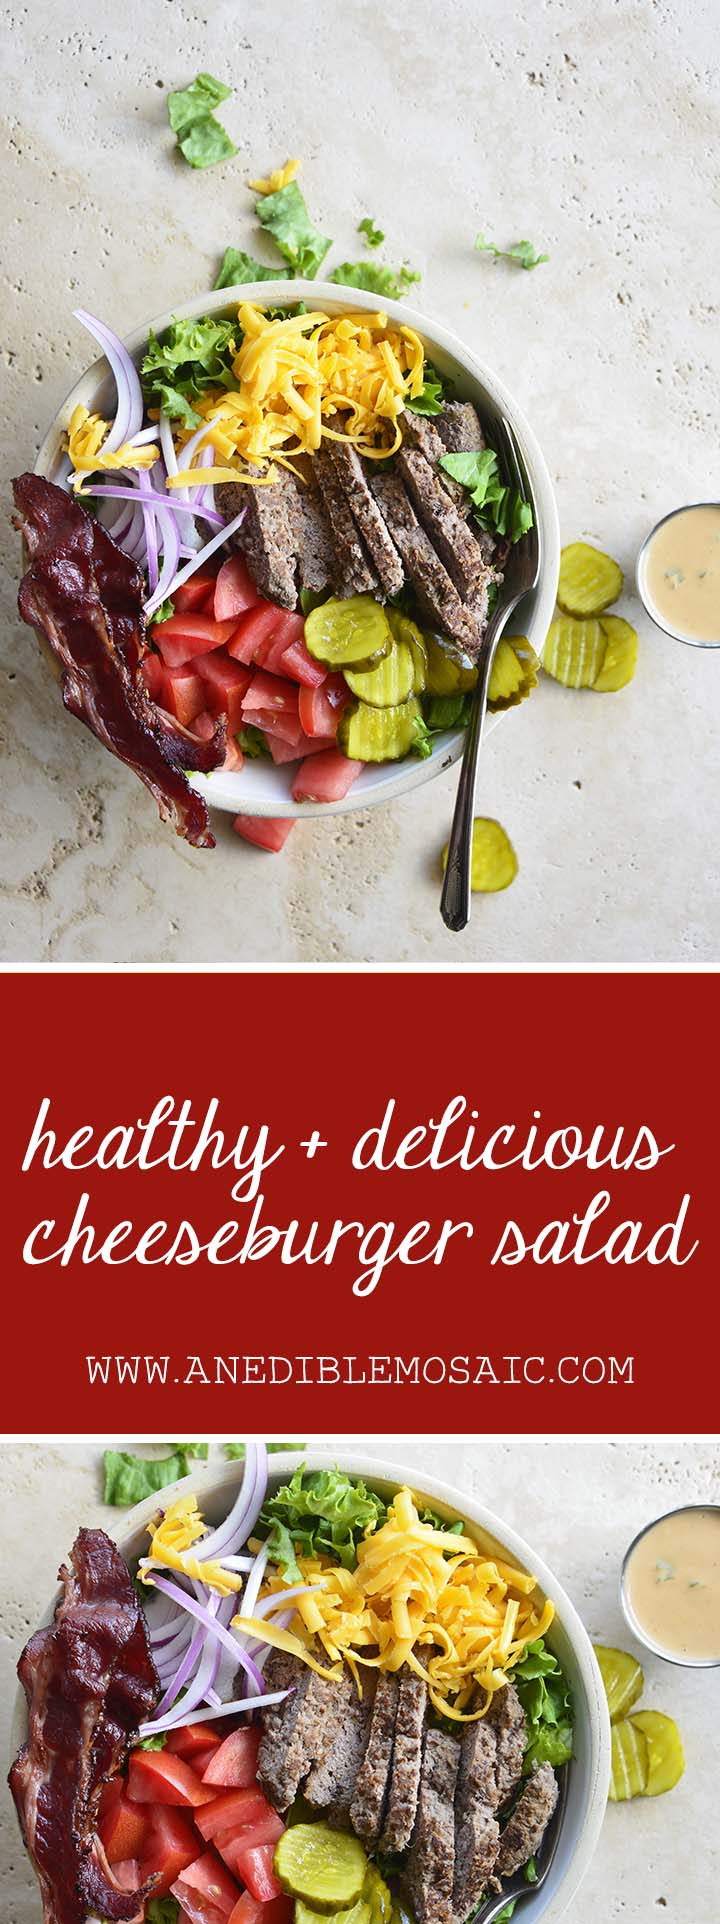 Cheeseburger Salad Pin